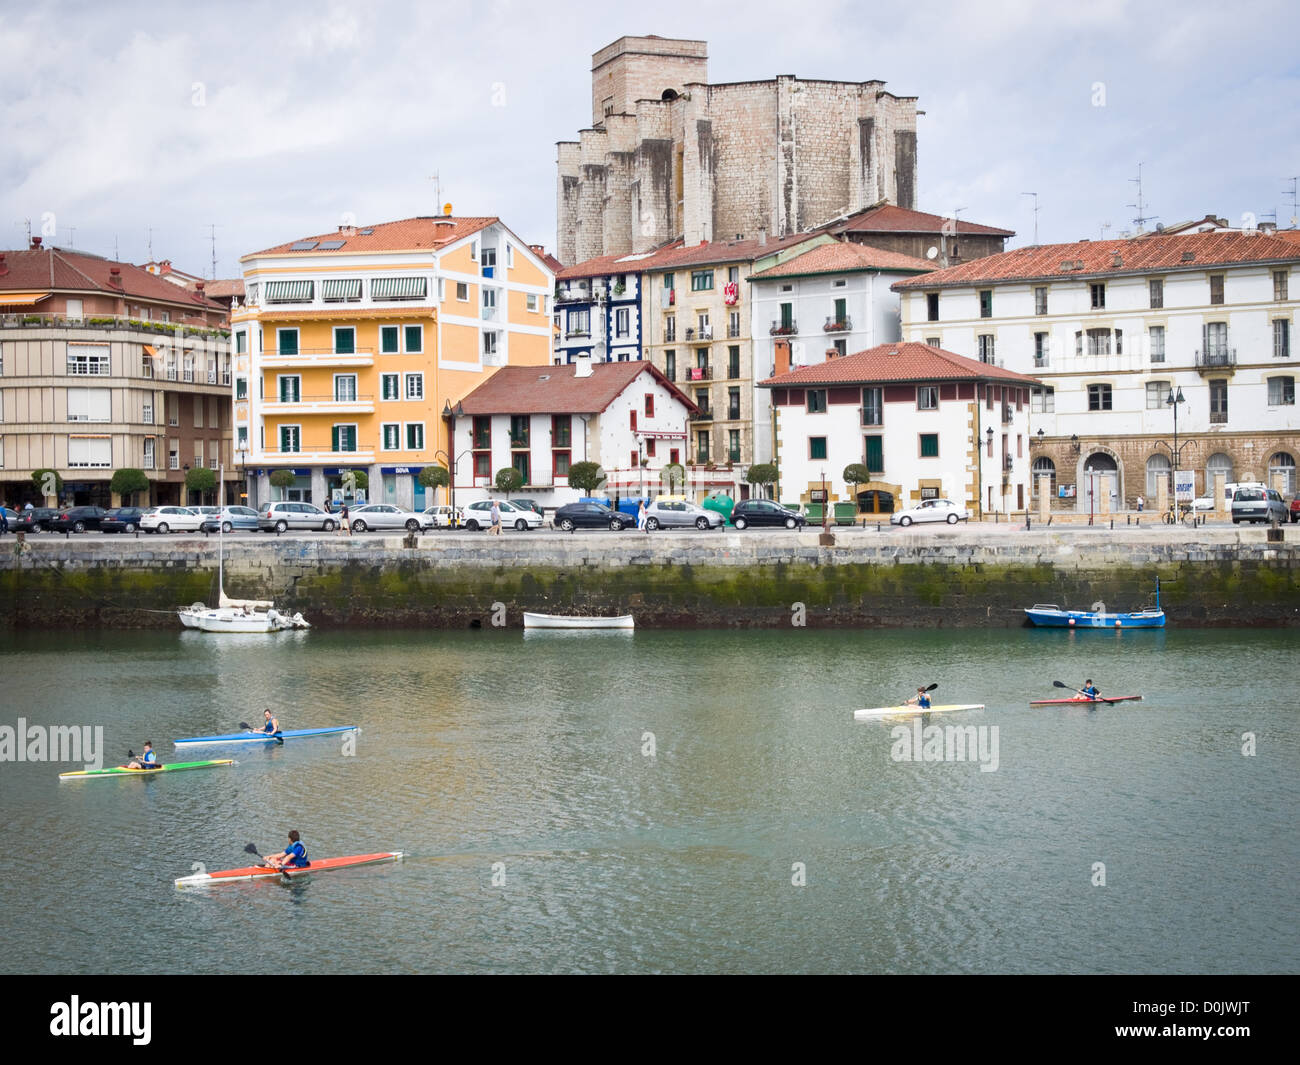 People kayaking near Zumaia, Guipuzkoa, in Northern Spain. The Basque-style Gothic church of San Pedro stands in - Stock Image